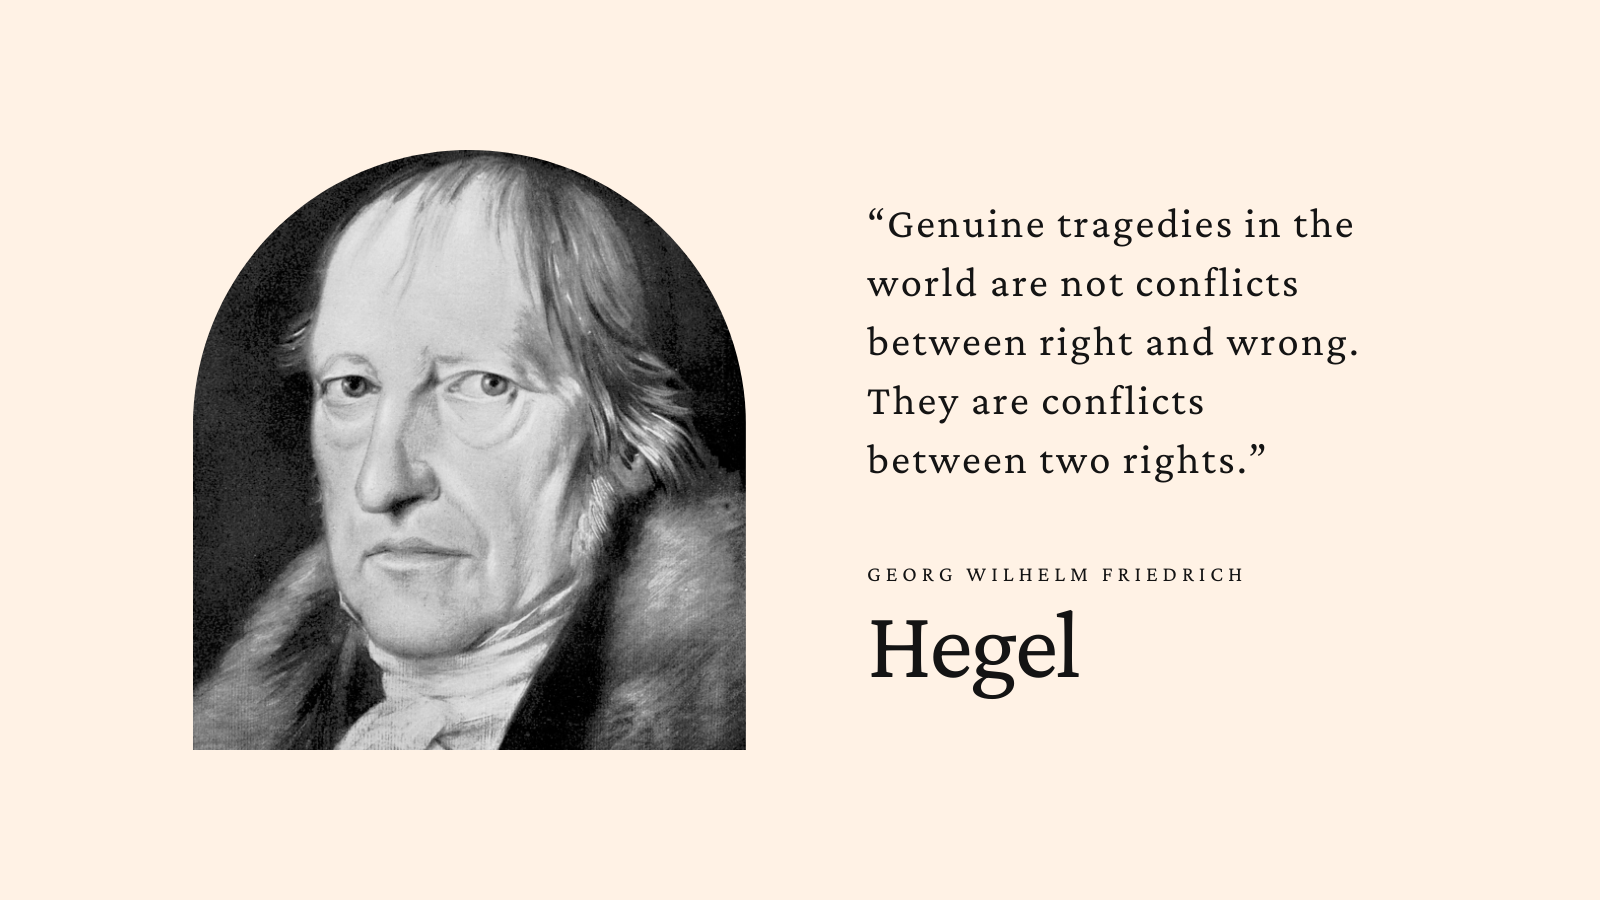 """Genuine tragedies in the world are not conflicts between right and wrong. They are conflicts between two rights."" GEORG WILHELM https://inspirational.ly"